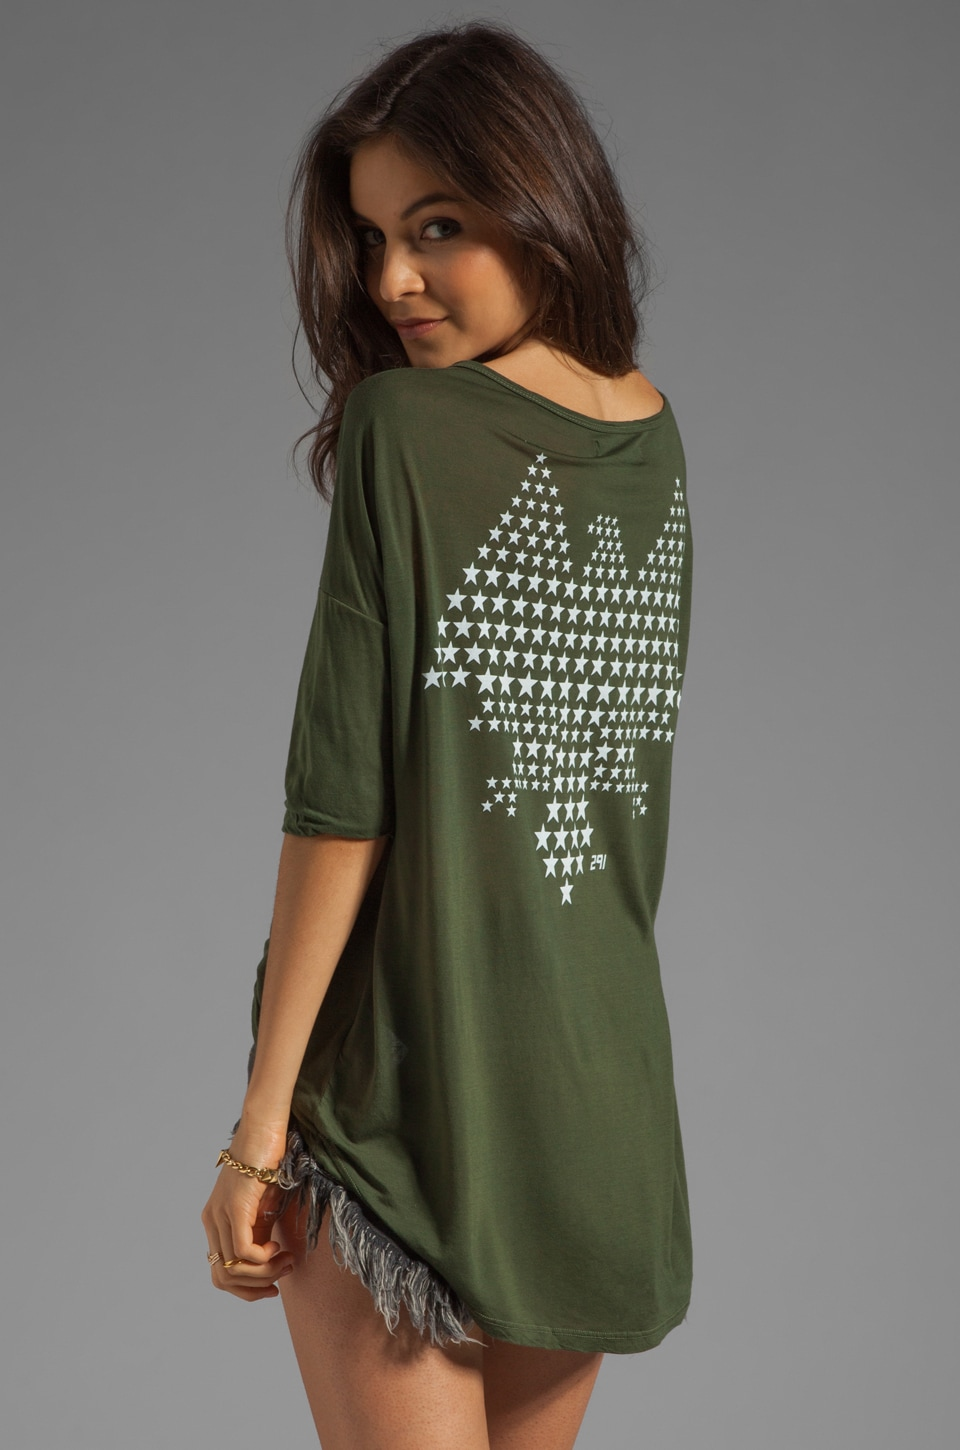 291 Freedom Wing Uneven Hem Top in Army